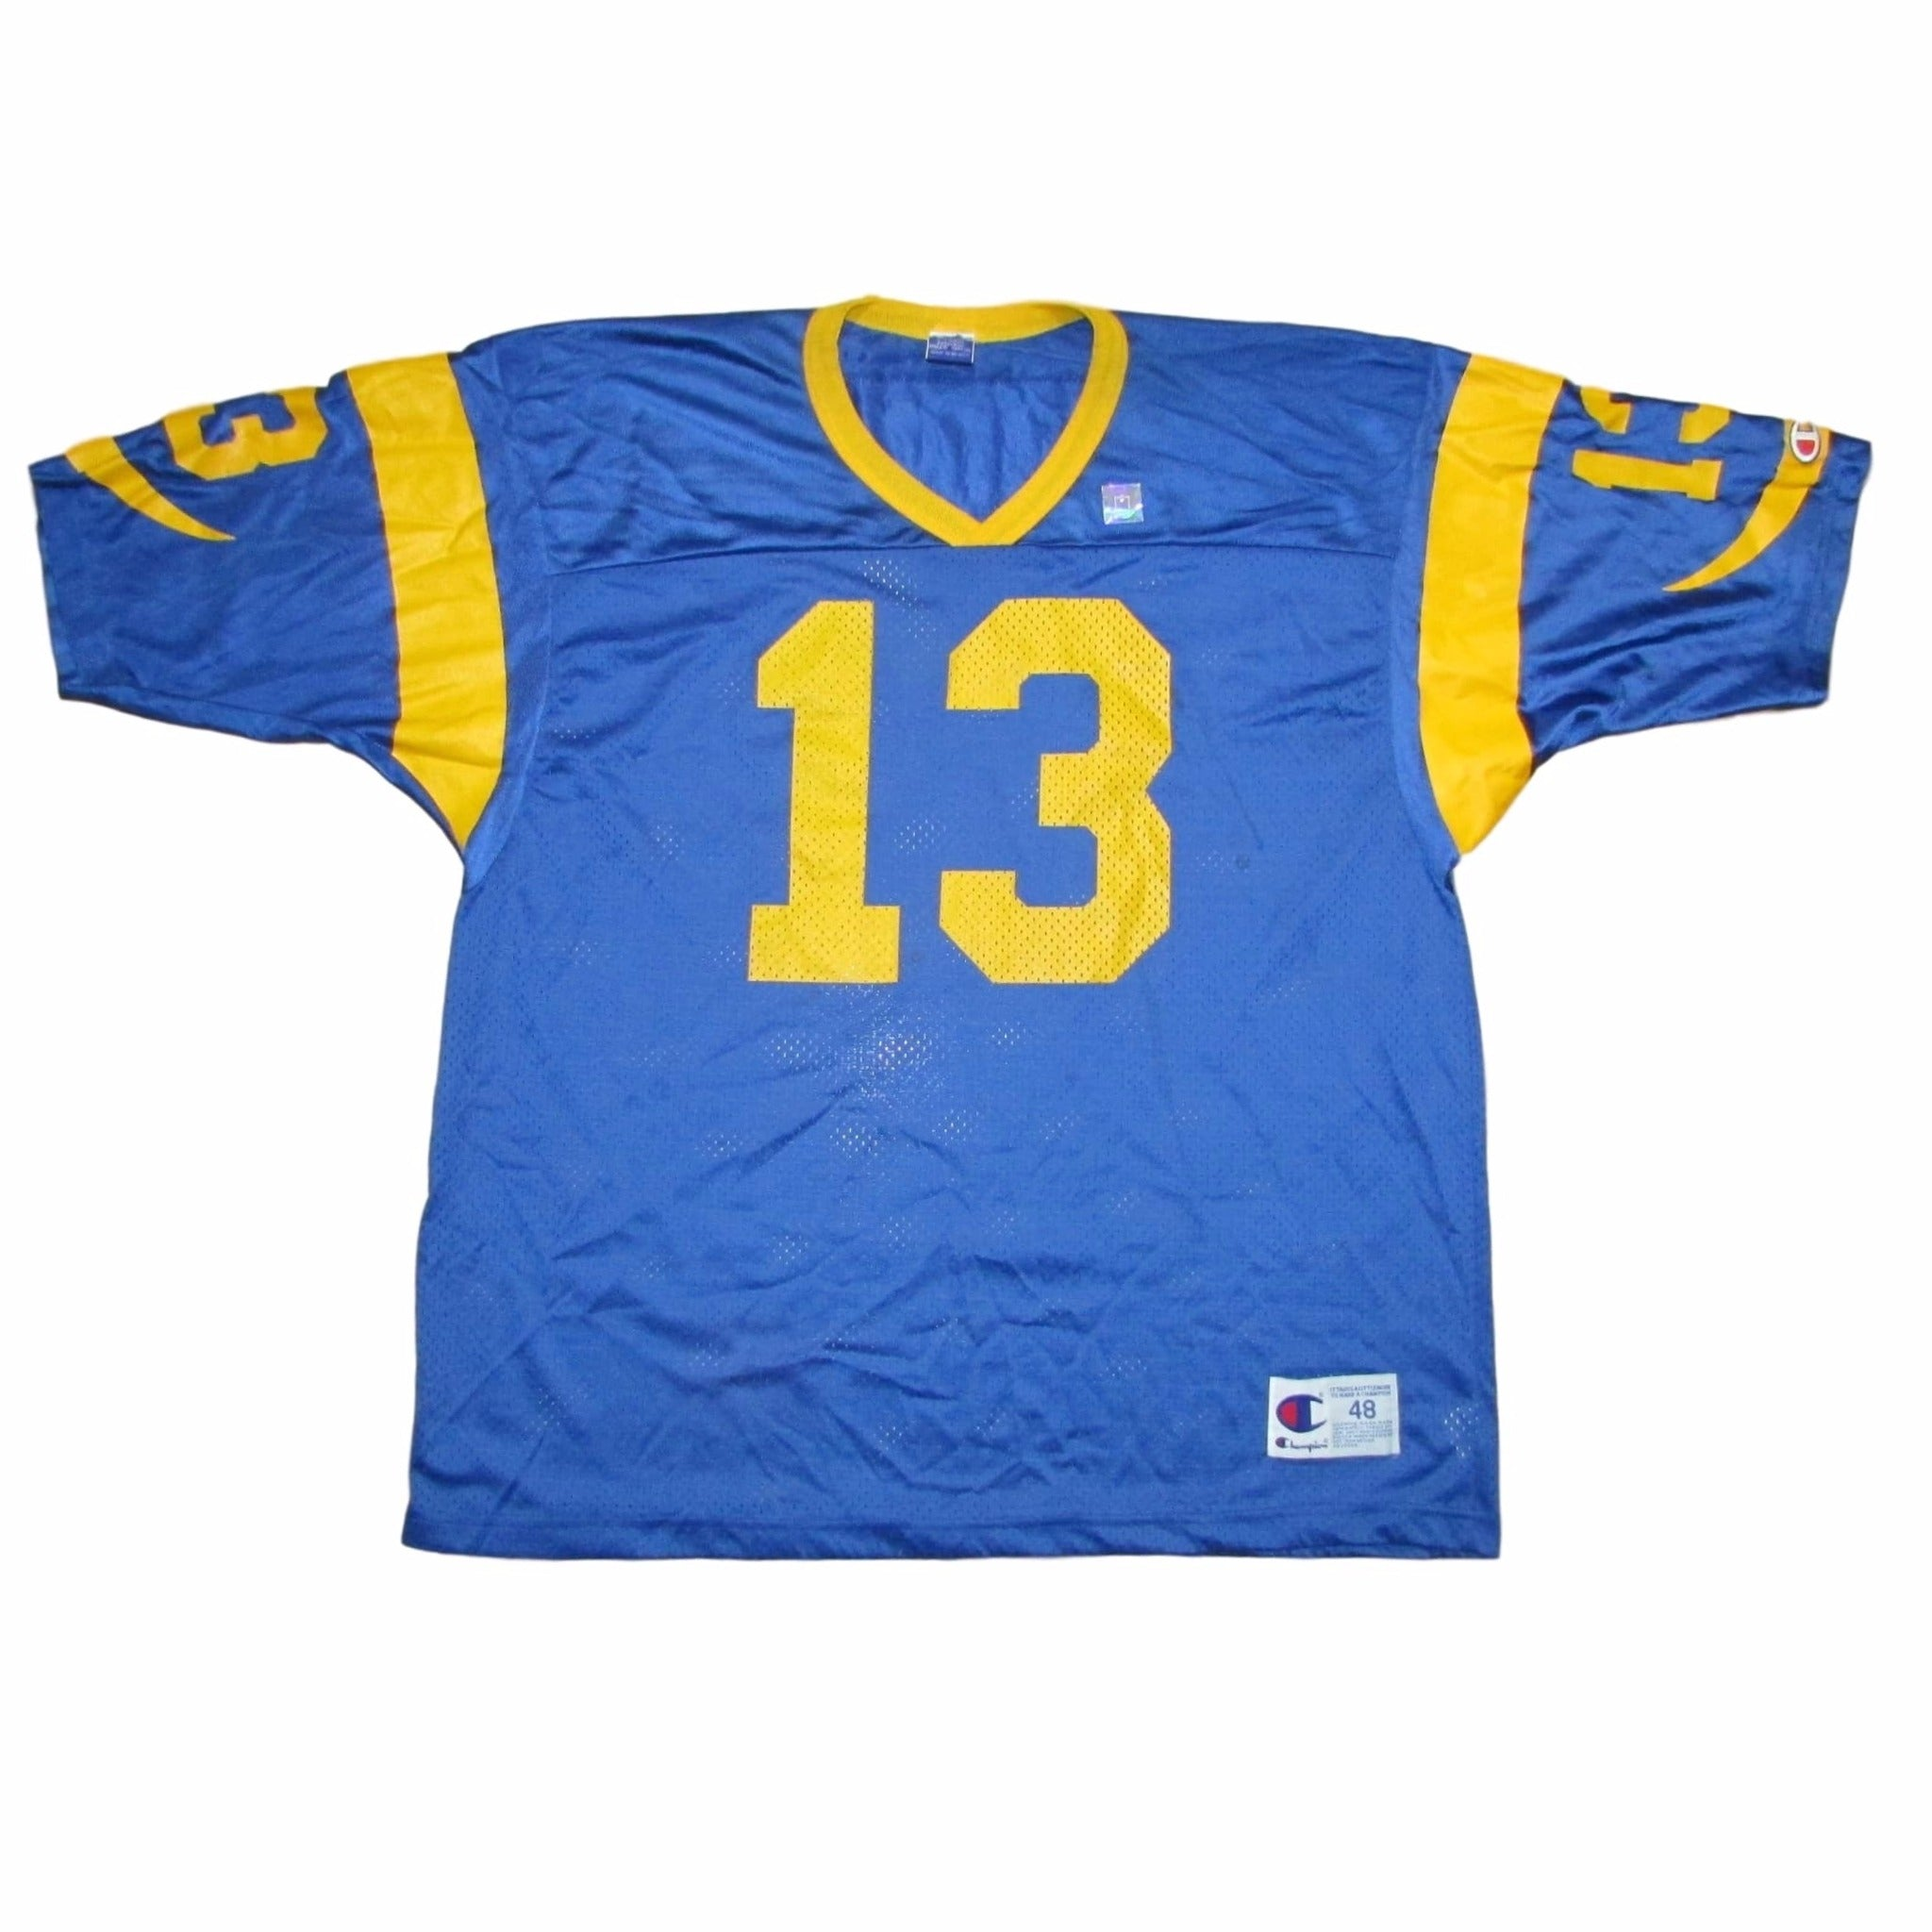 St. Louis Rams Kurt Warner CHAMPION Jersey LA Rams Colors Sz 48